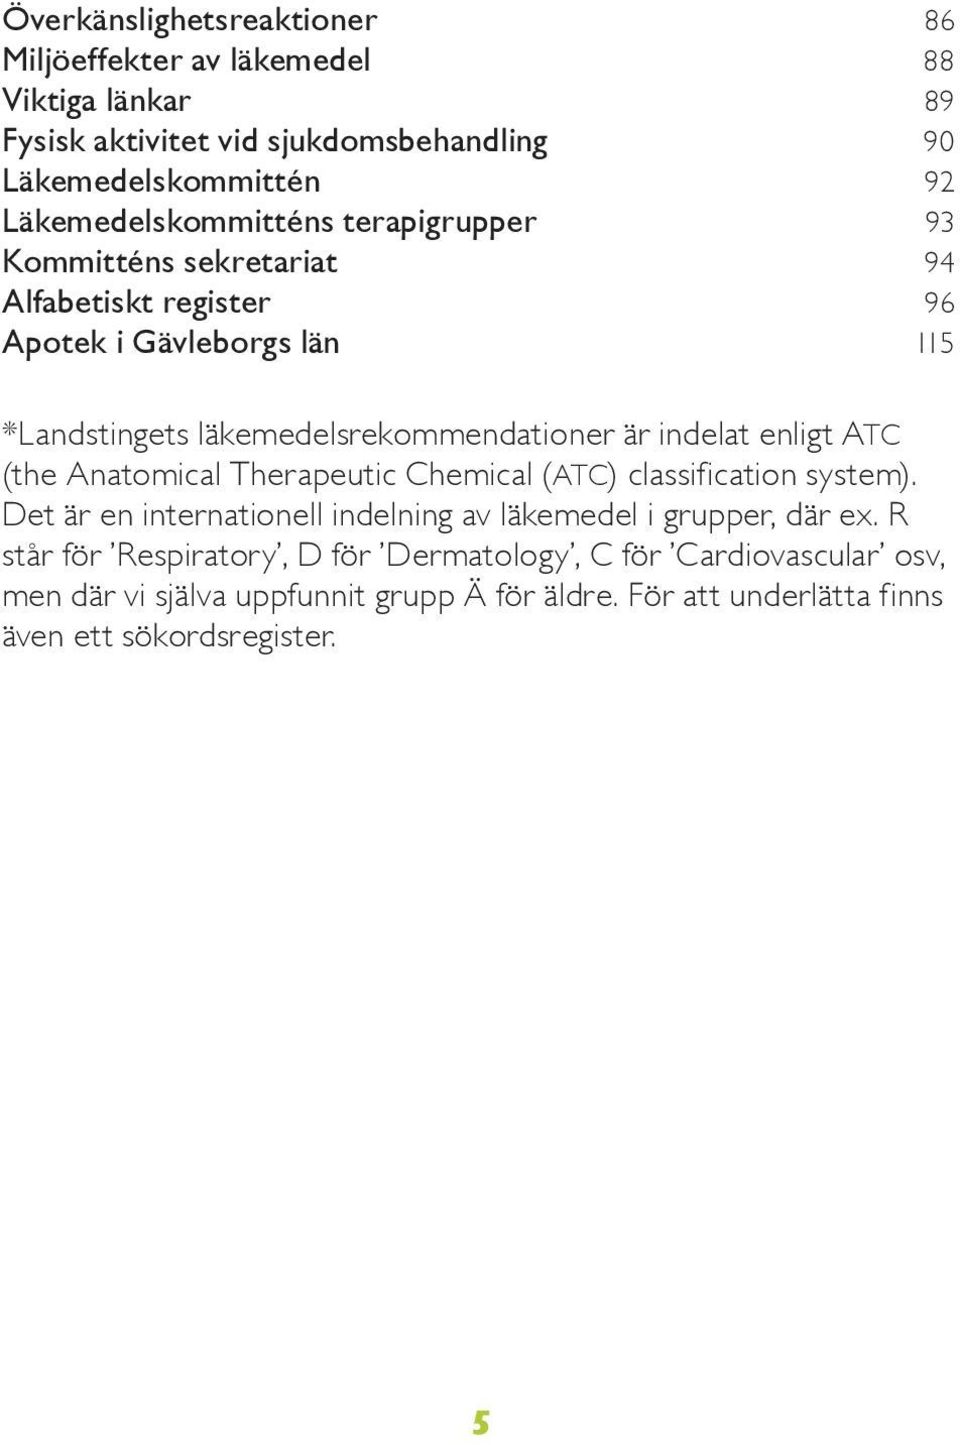 läkemedelsrekommendationer är indelat enligt ATC (the Anatomical Therapeutic Chemical (ATC) classification system).